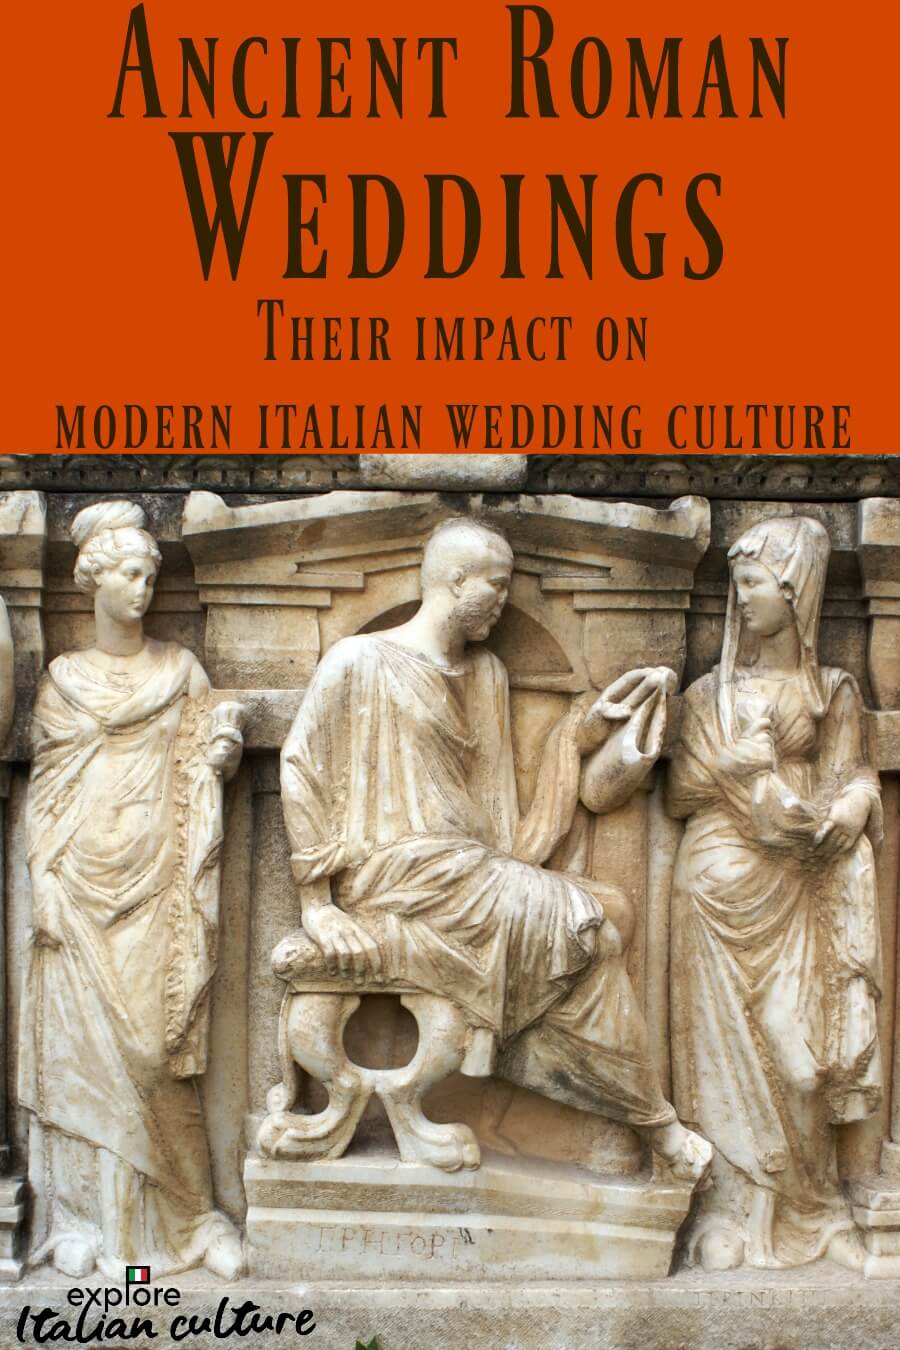 Ancient Roman weddings clickable link